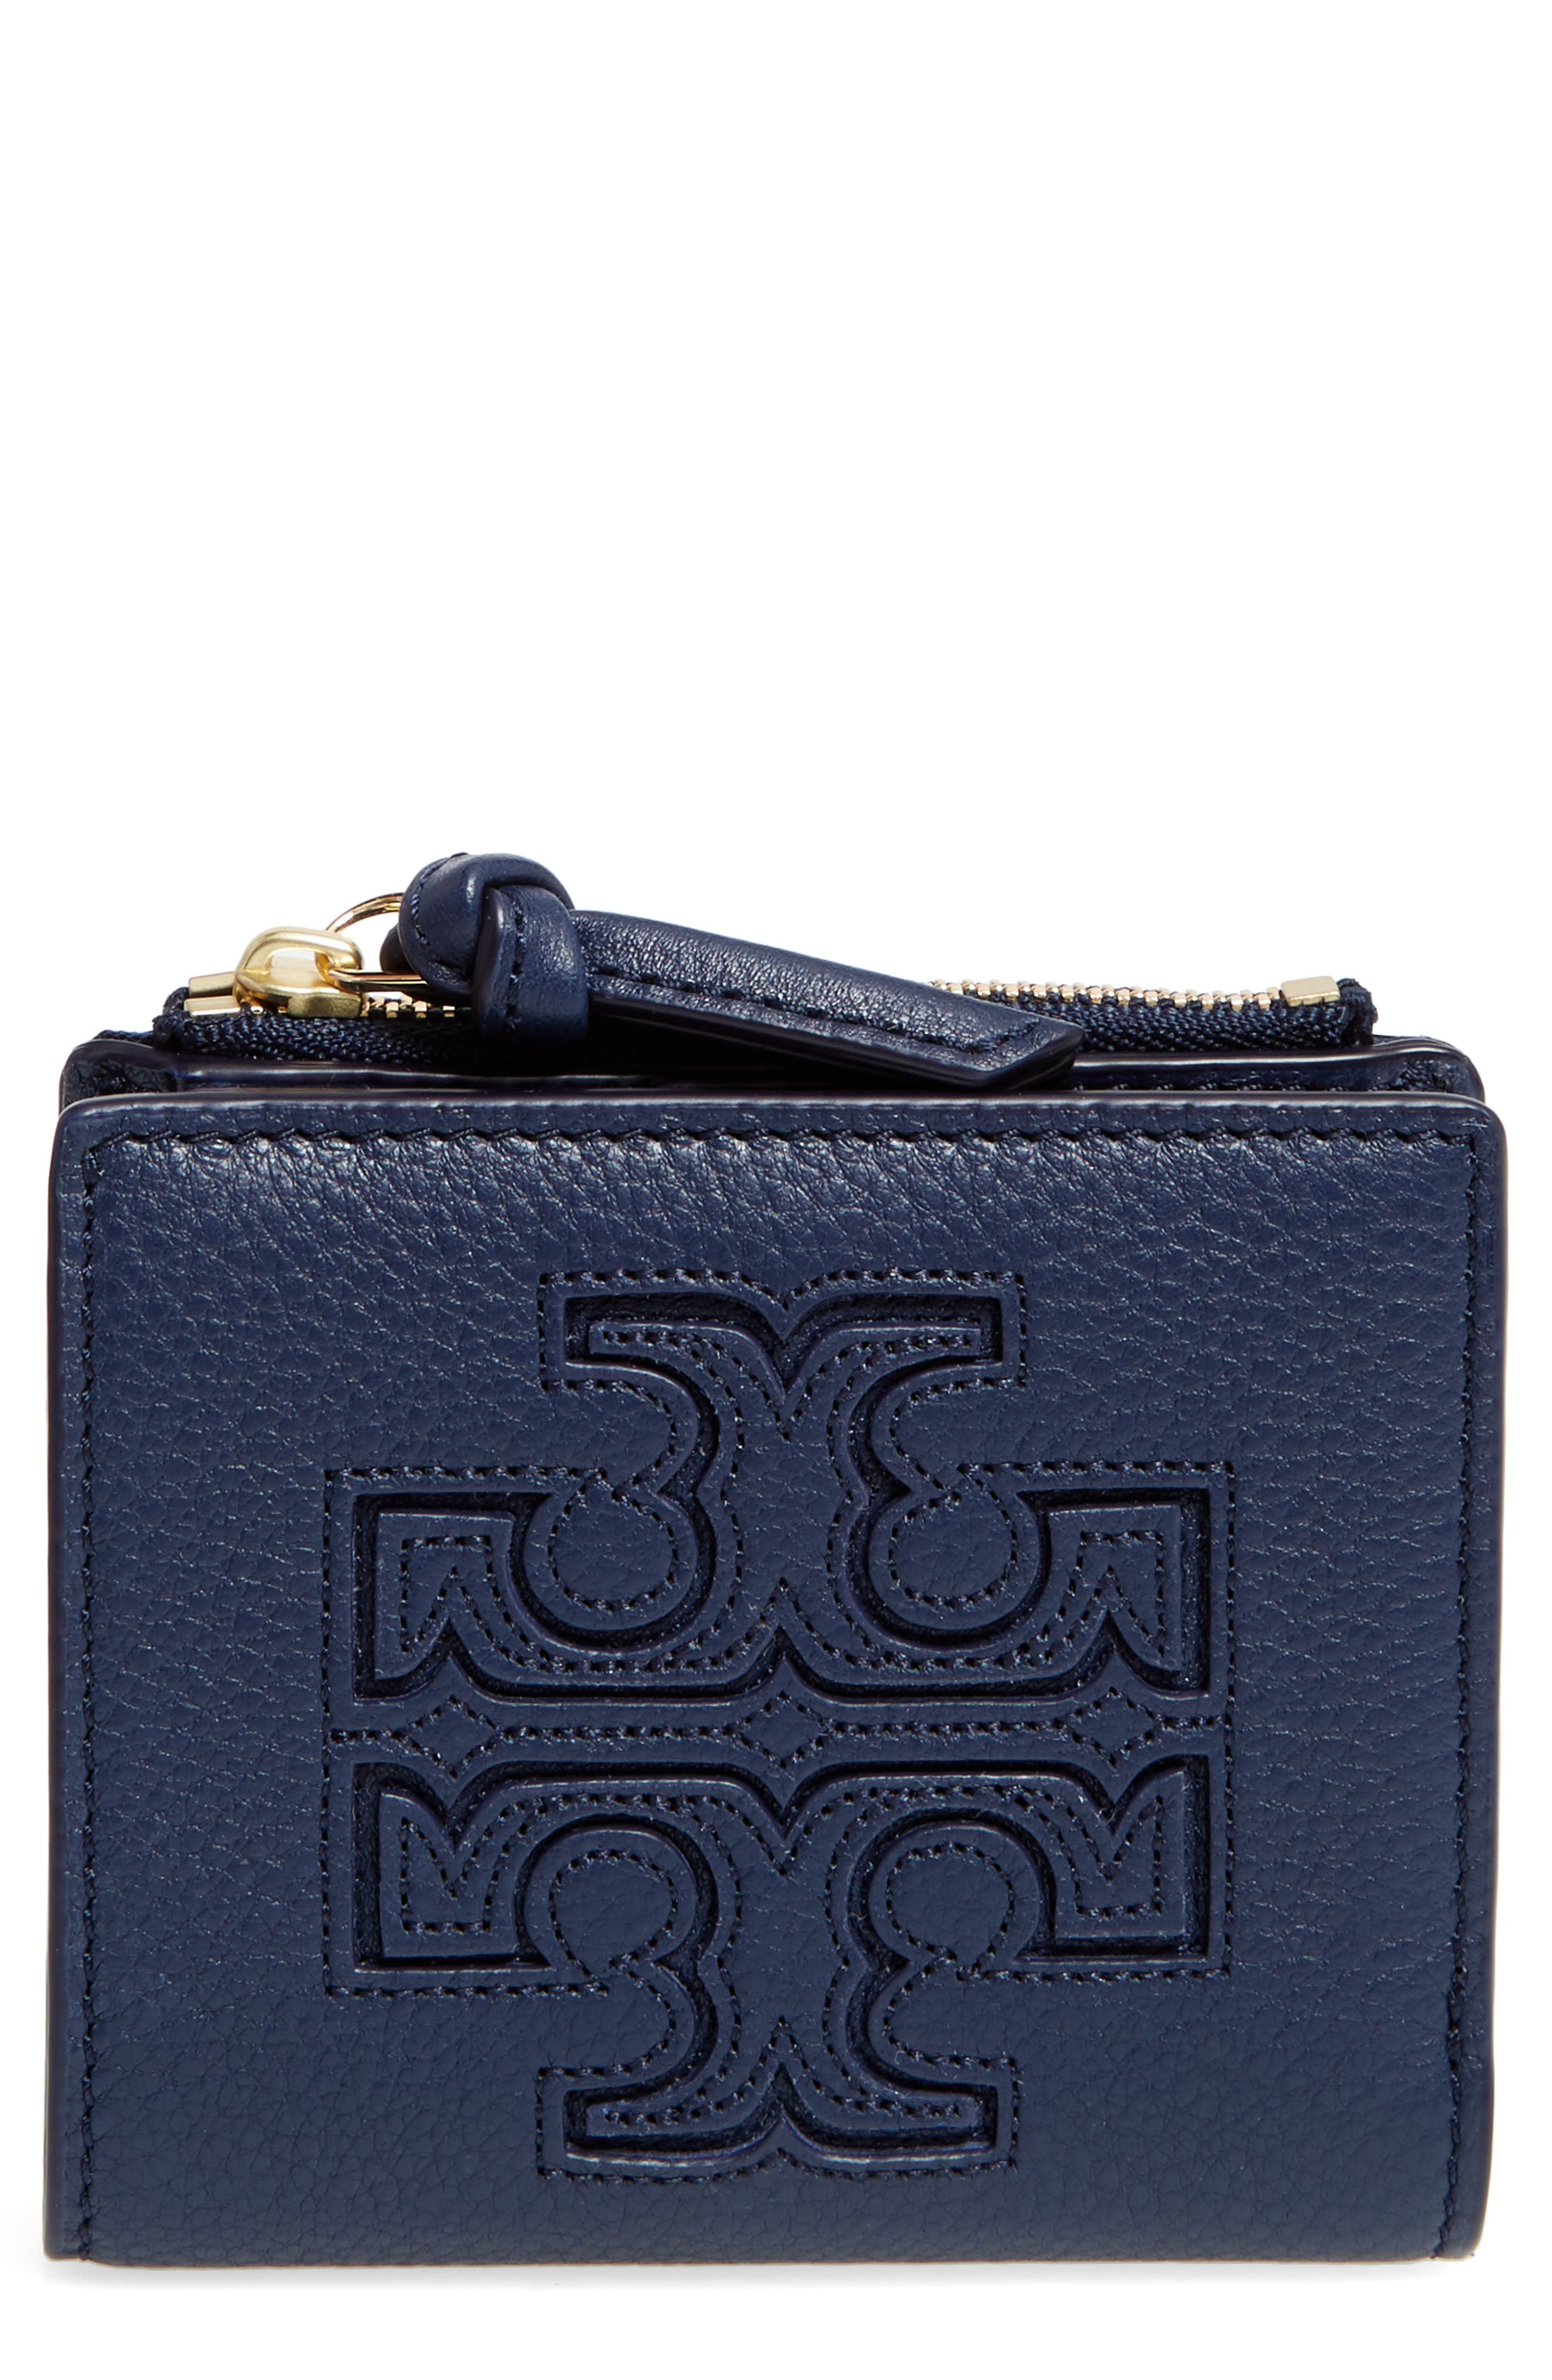 Alternate Image 1 Selected - Tory Burch 'Mini Harper' Leather Wallet